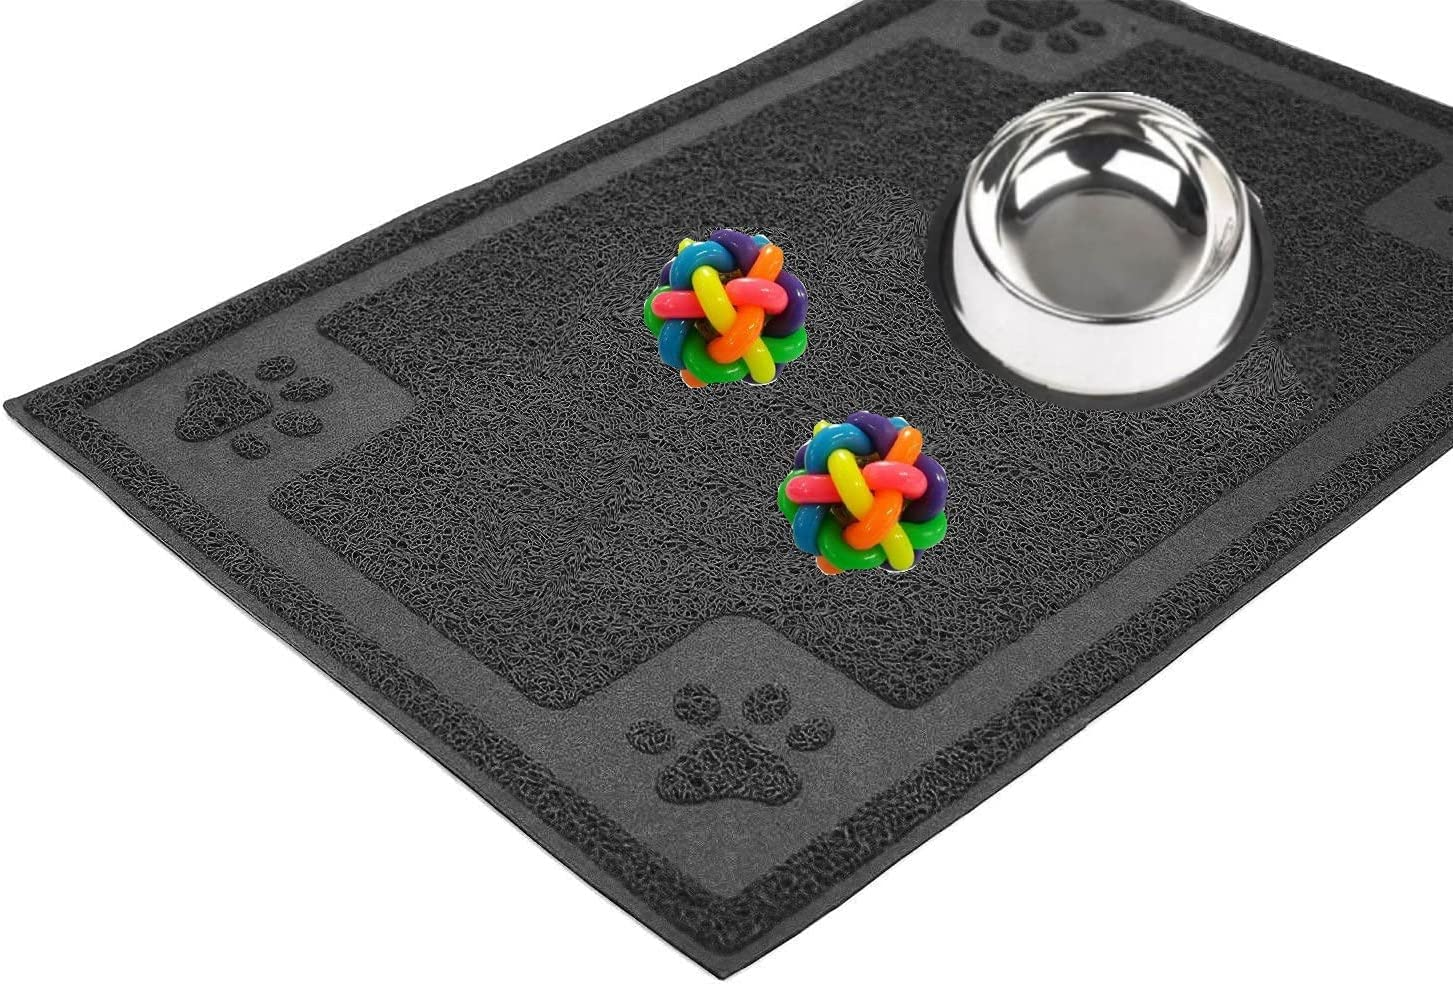 Lacertus Pet Feeding Mat, Bowl Mats for Dog and Cat, Silicone Non-Slip Absorbent Waterproof Mat, Easy to Clean Mats, Dog Dish Mats for Floors Waterproof, Placemat for Dog Bowls